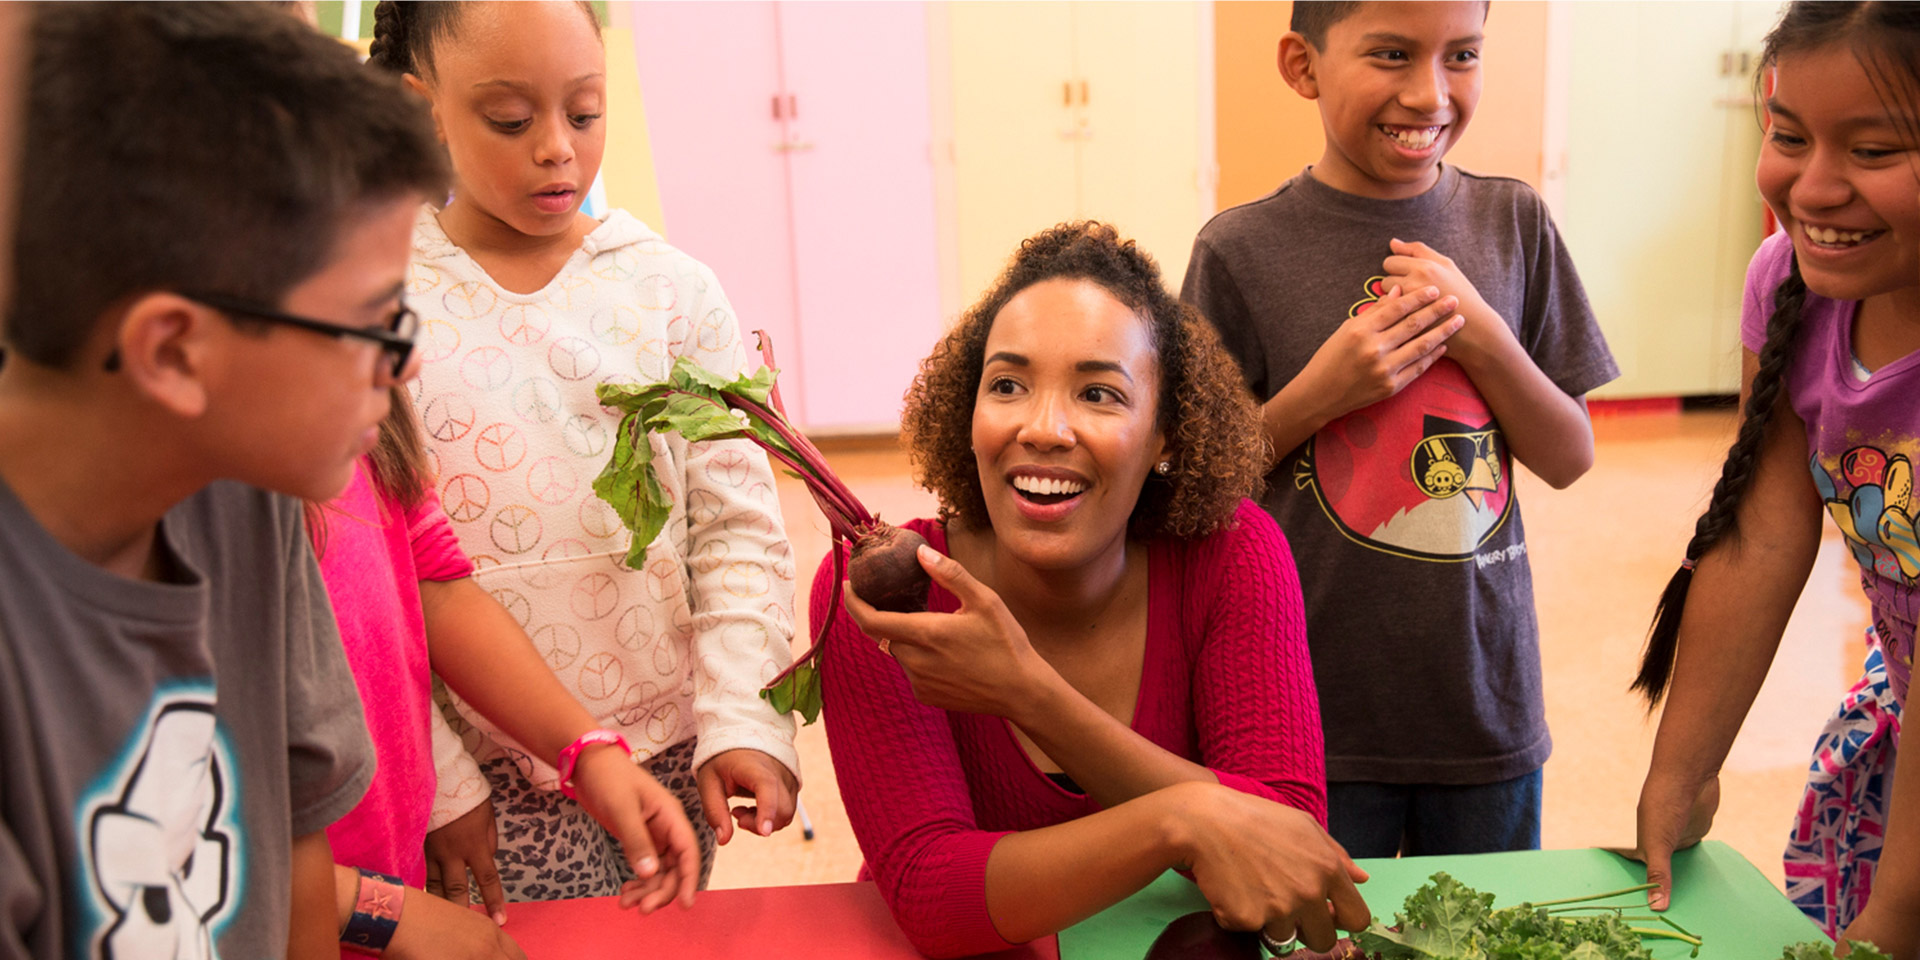 A K-12 teacher uses vegetables to engage students